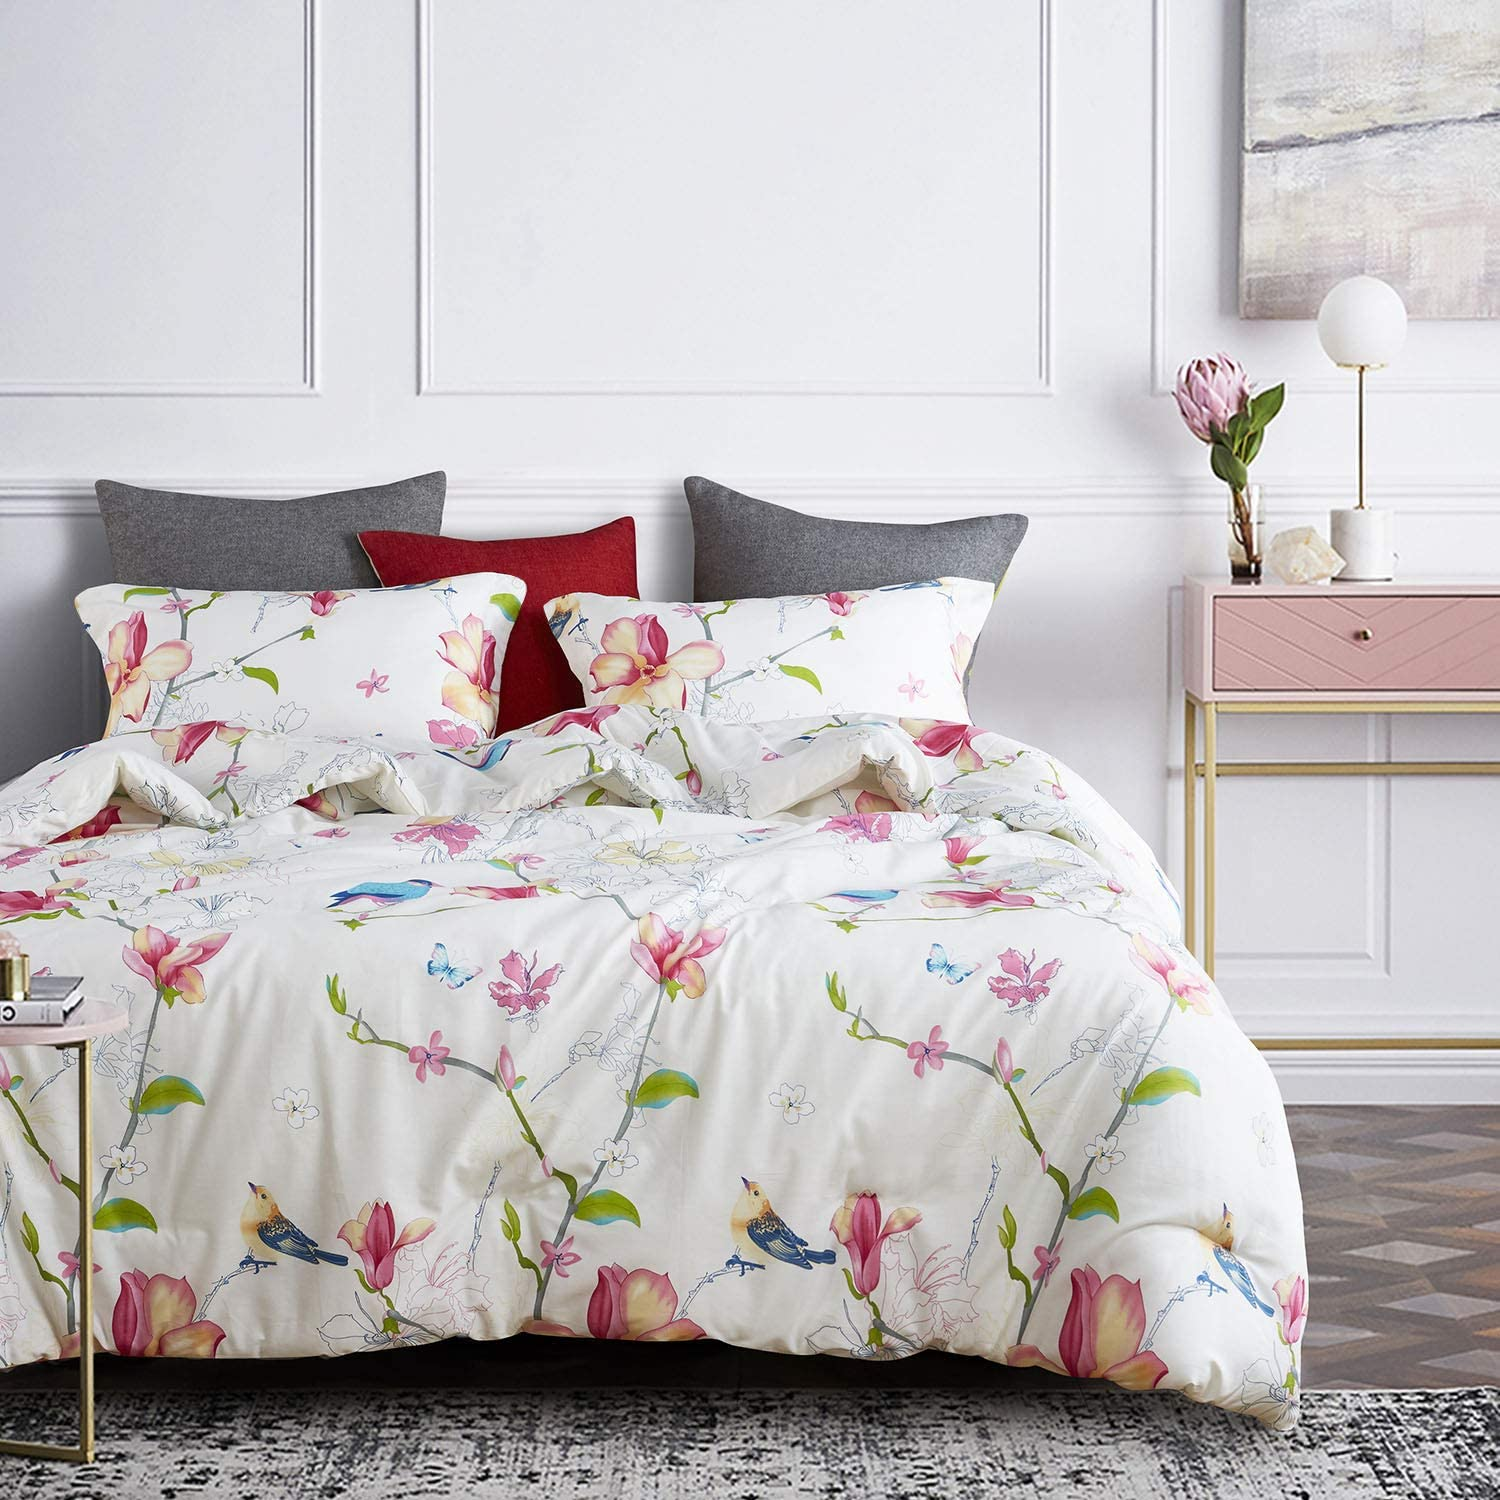 White Floral Flowers and Tree Branches Leaves Pattern Printed on Dark Grey Wake In Cloud 100/% Cotton Fabric with Soft Microfiber Fill Bedding Gray Comforter Set 3pcs, King Size